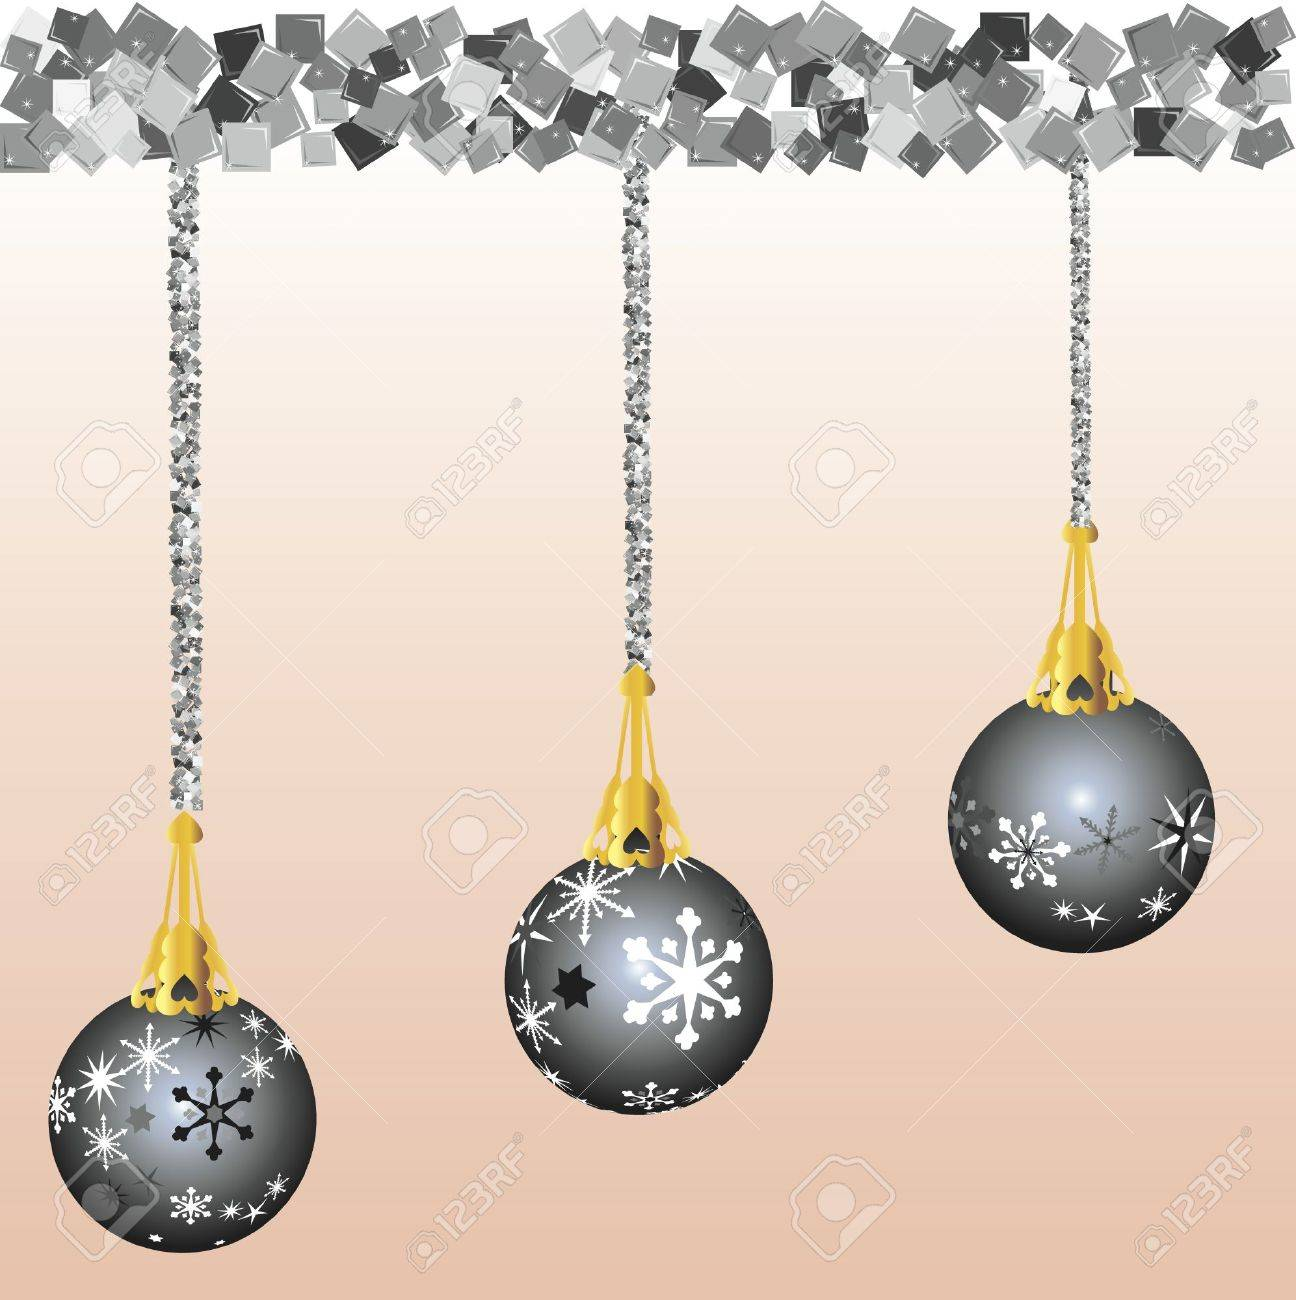 Christmas decorations illustrated with black and white snowflakes on a peach background. Each ornament is unique, hanging on stings of Garland. Stock Photo - 2426322